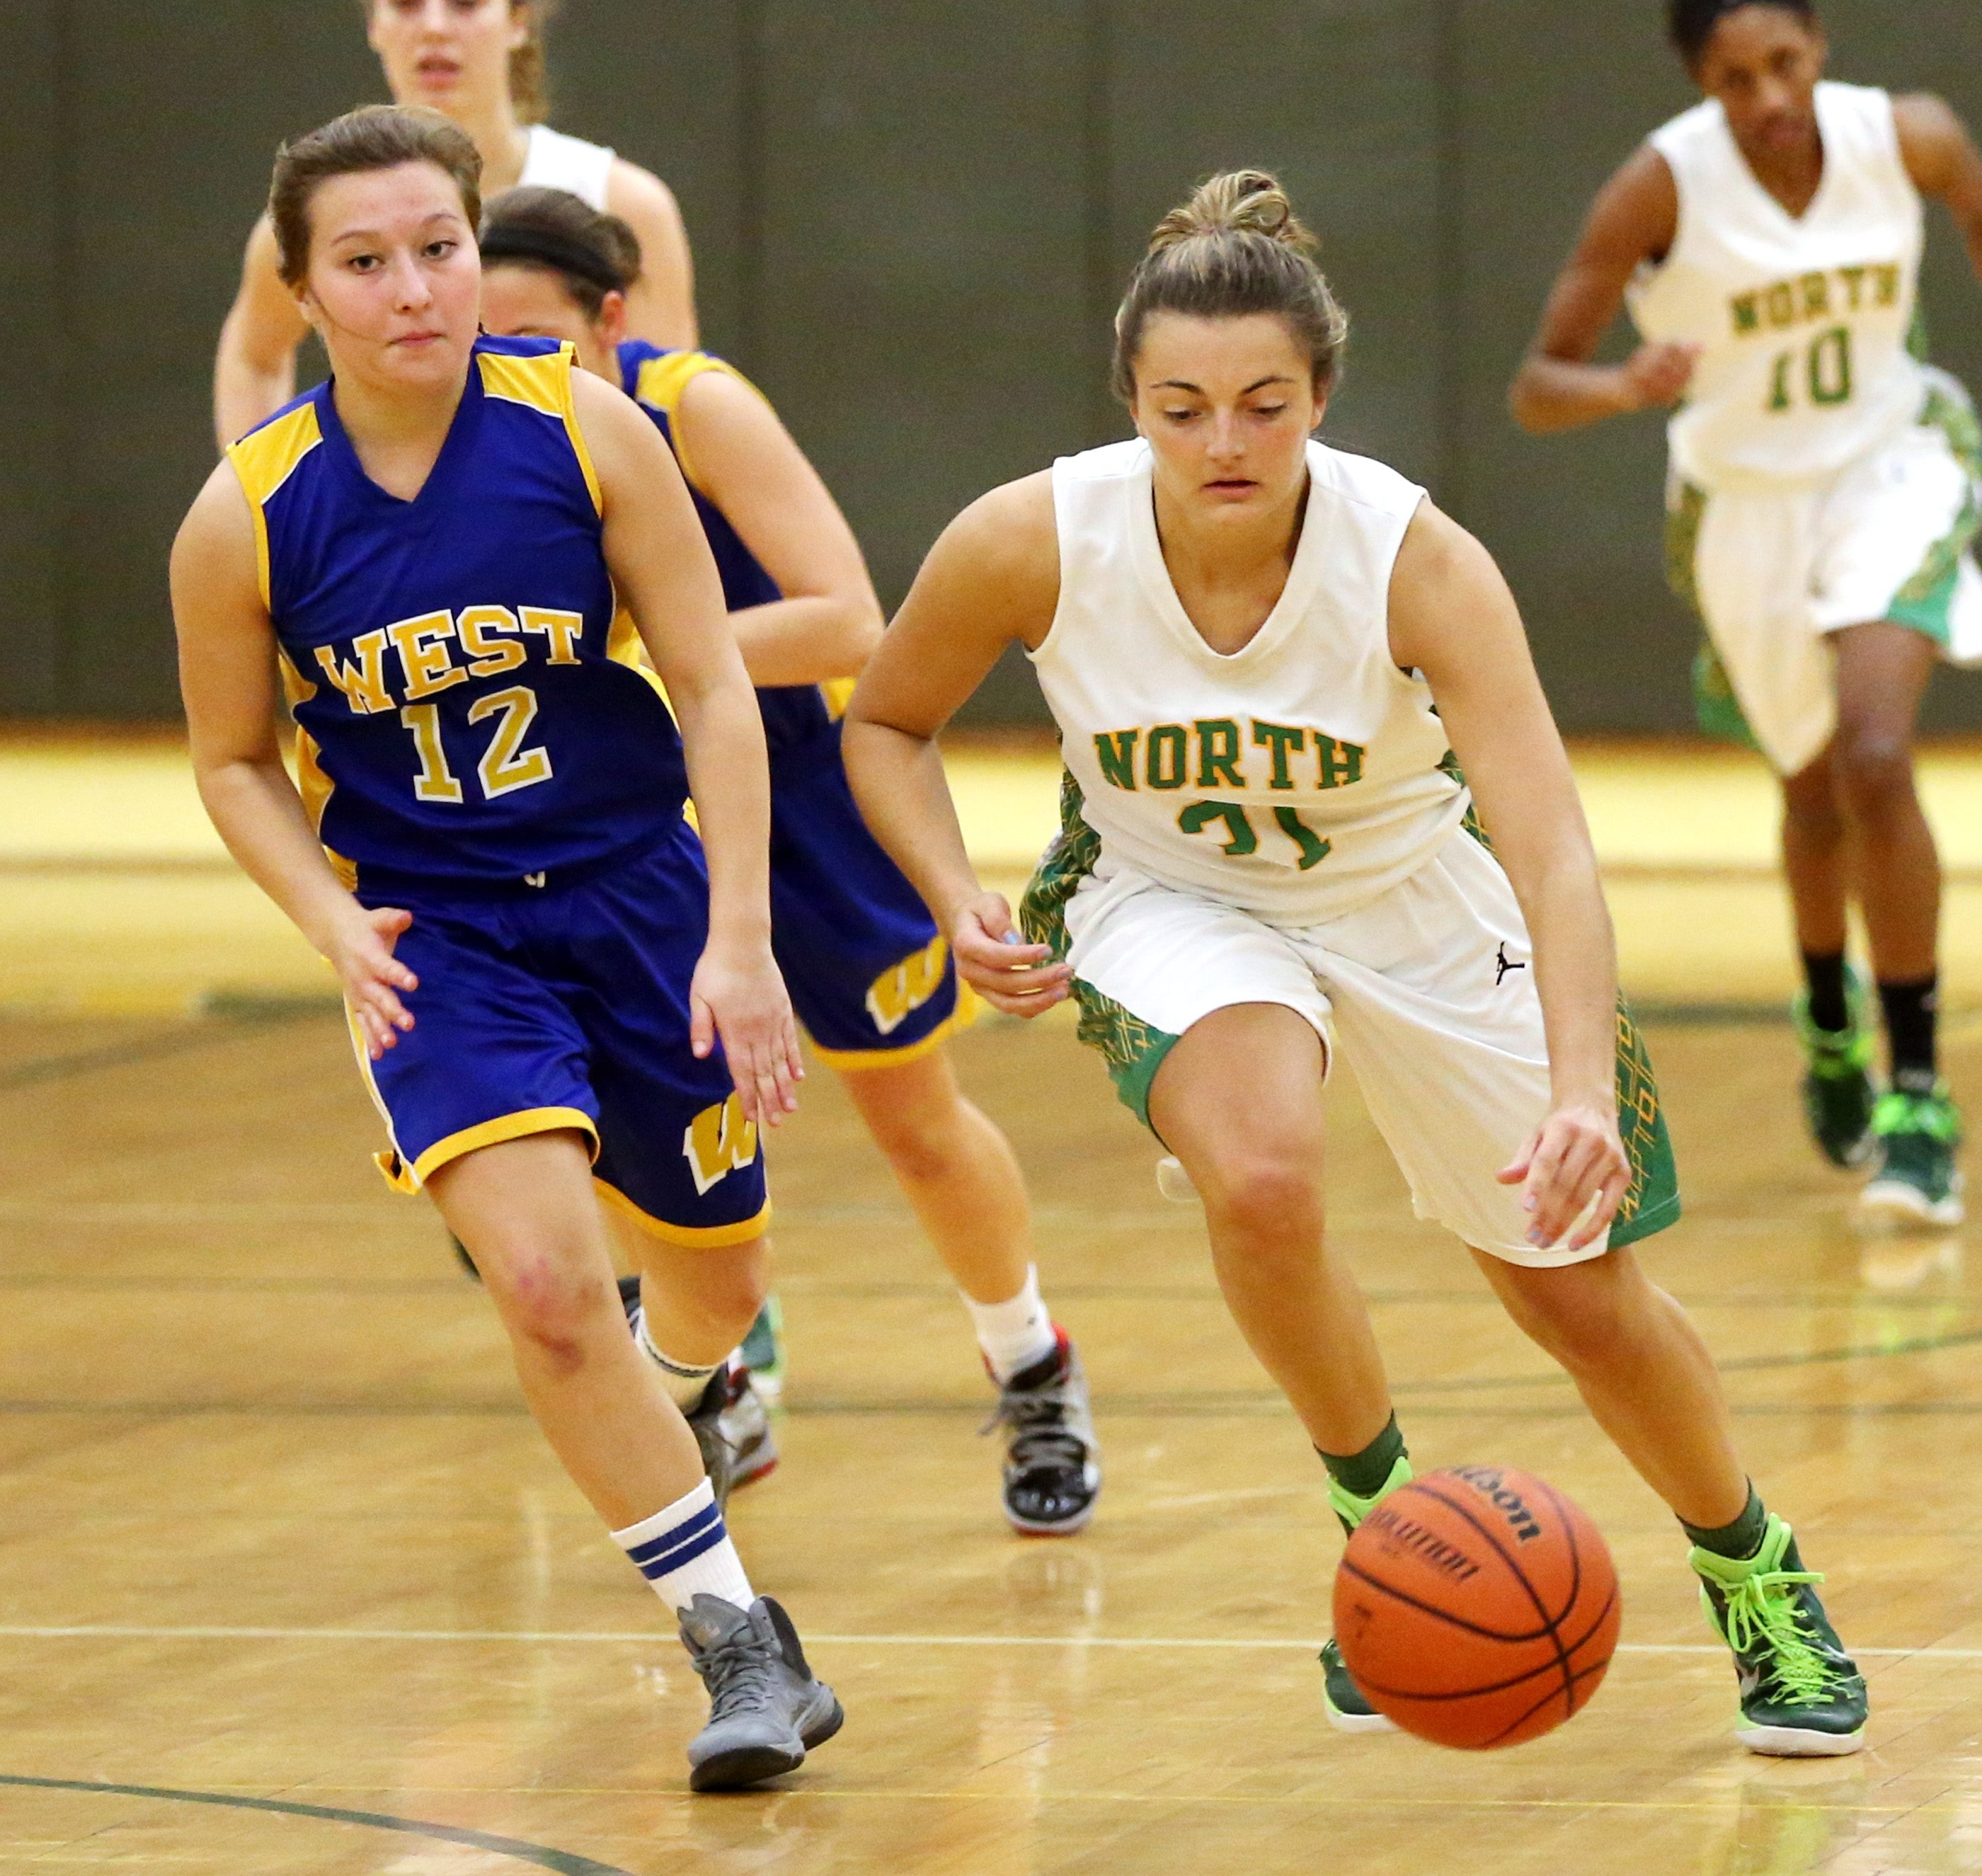 Williamsville North's Clare Ahern heads to the basket past West Seneca West's Casey Villagomez to score two points in her team's 67-40 win.